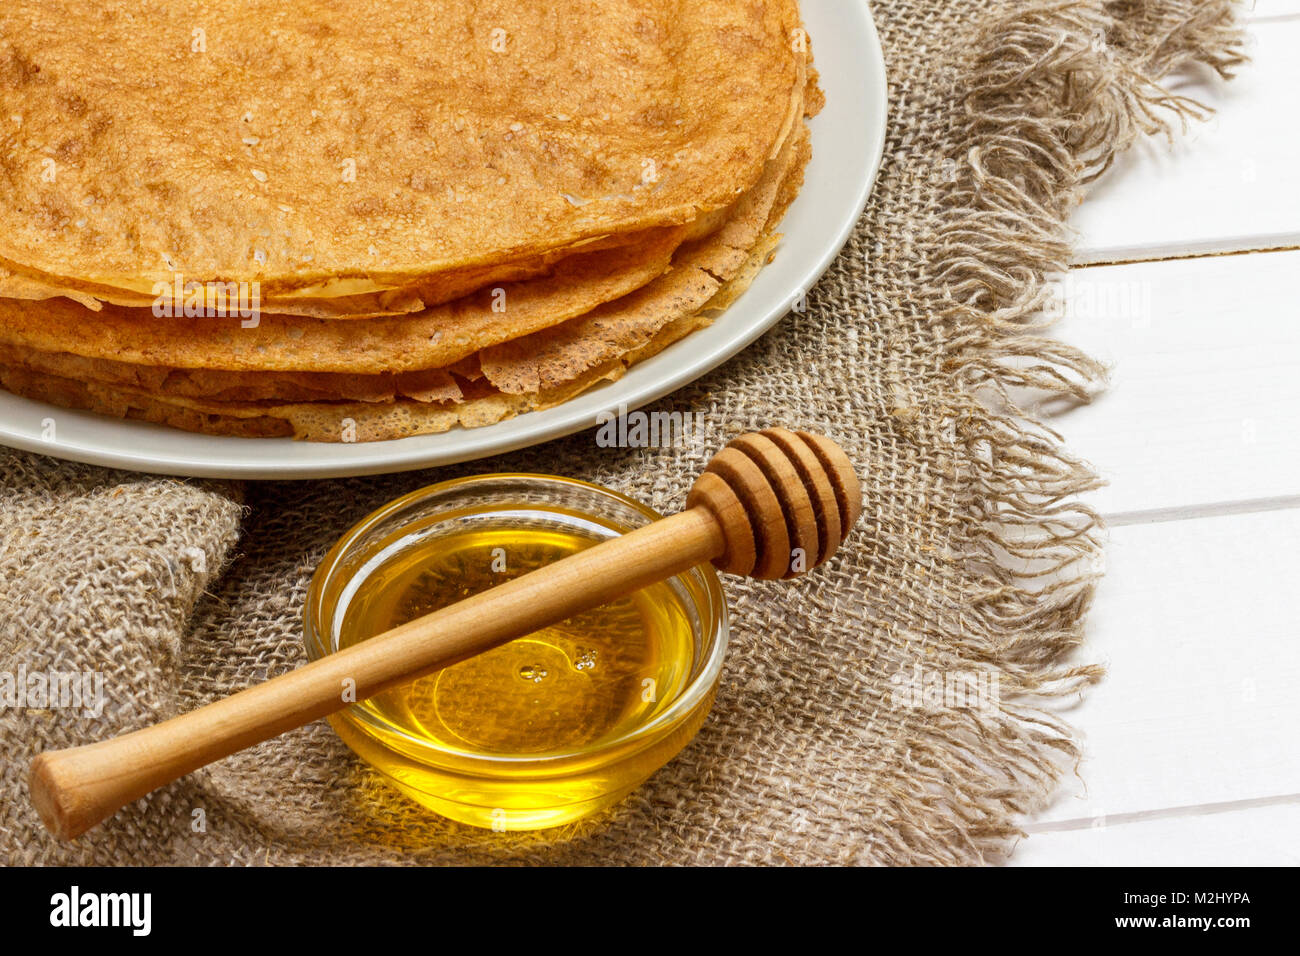 Pancakes on a white plate. Fresh honey in a jar. Wooden spoon for honey. Dessert. Healthy Breakfast. The table was - Stock Image